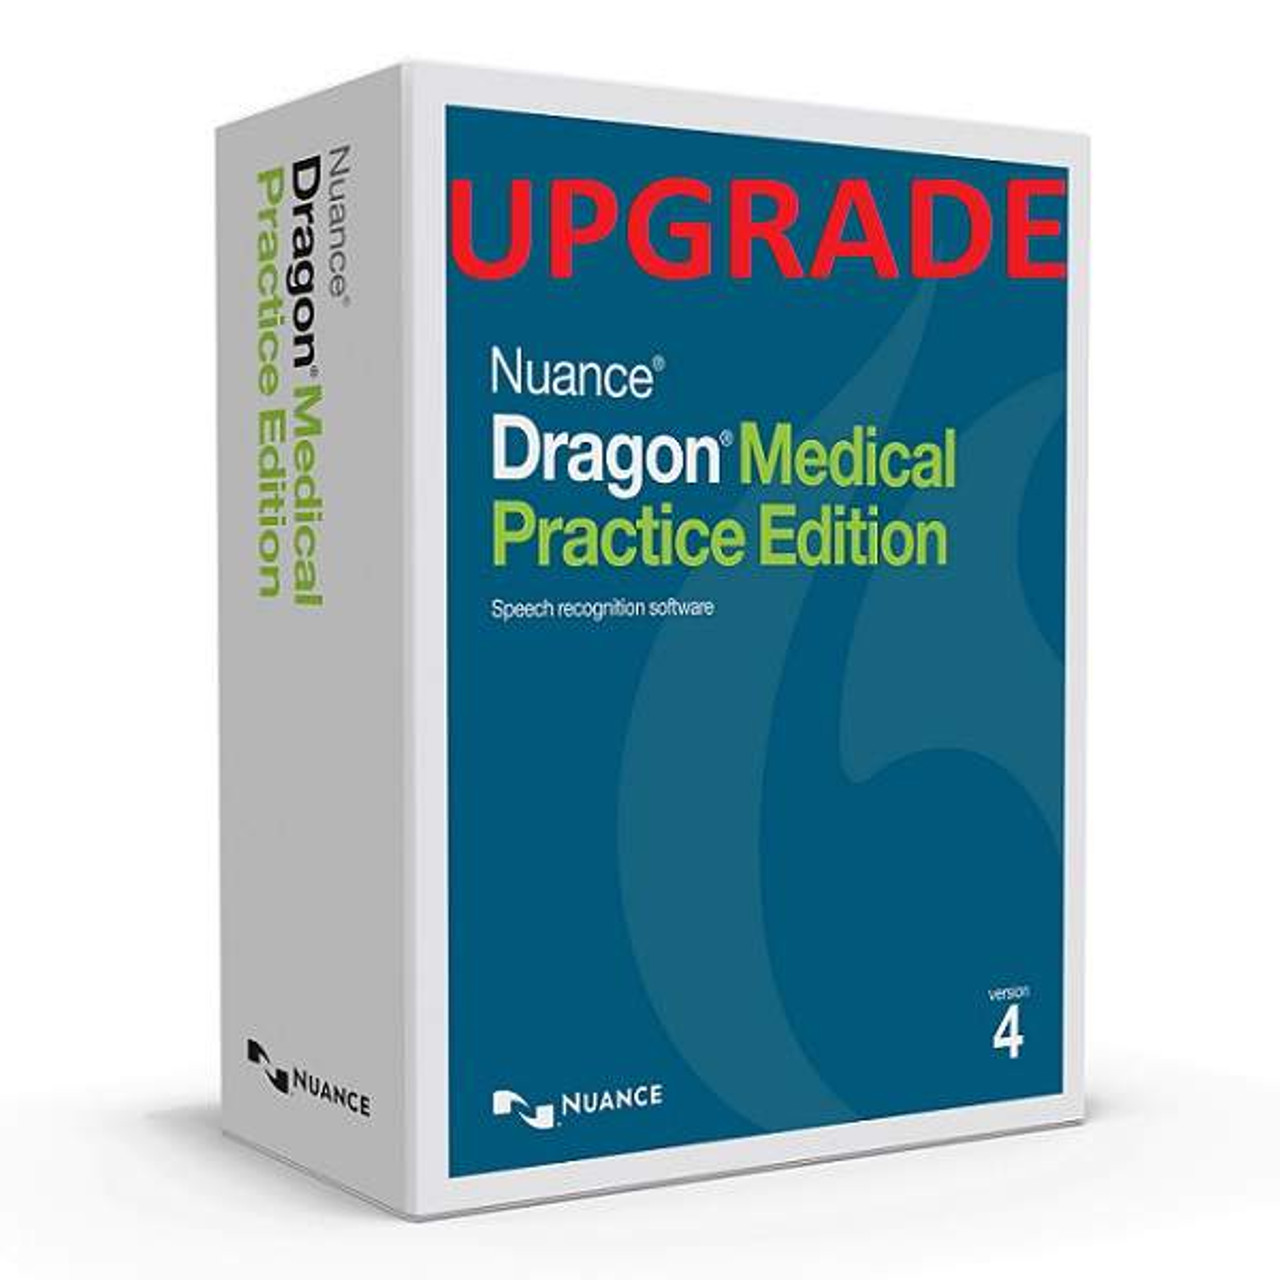 Nuance® Dragon® Medical Practice Edition 4, Upgrade from Dragon® Medical  Practice Edition 2